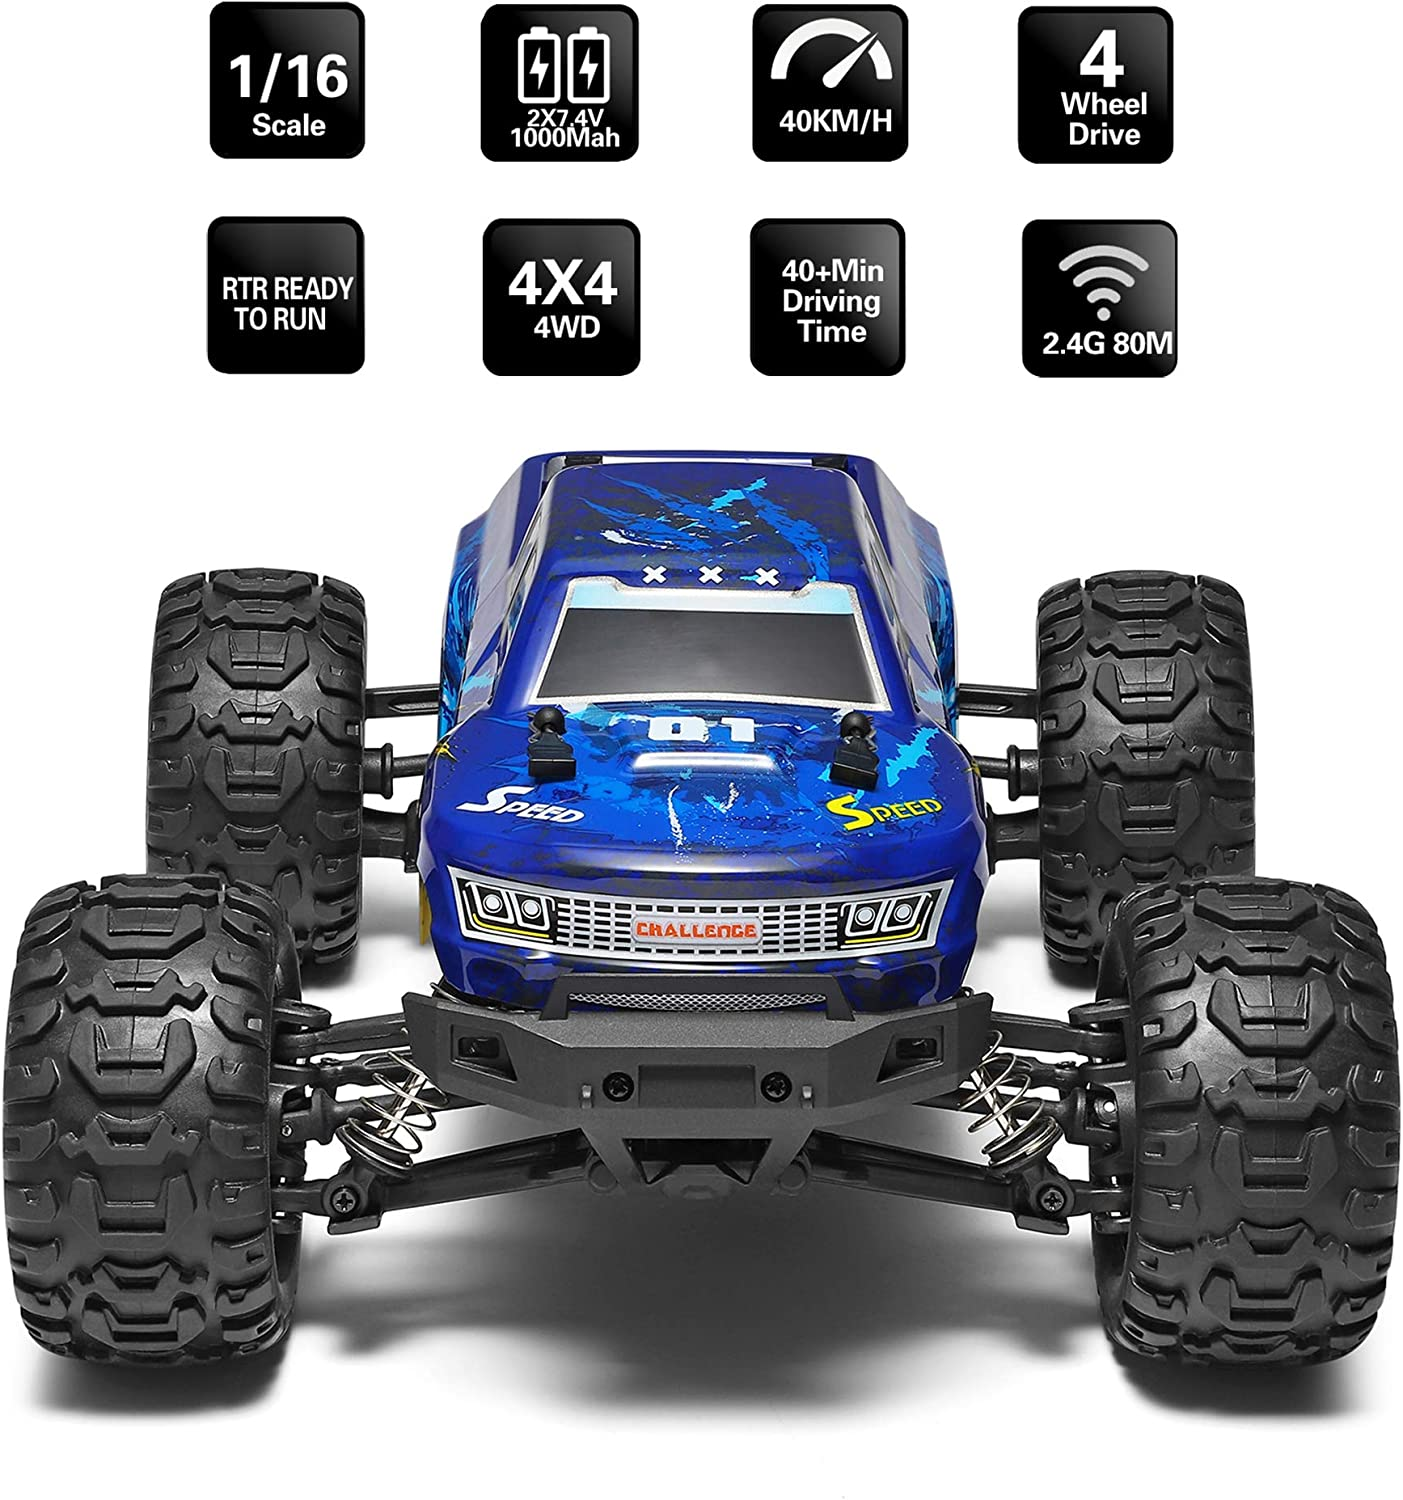 4x4 Remote Control Car for Adults and Kids 4WD All Terrain Off Road Truck 2 Rechargeable Batteries Ideal for Kids and Adults 1:16 Scale Electric Powered 42km High Speed MIEBELY Fast RC Cars